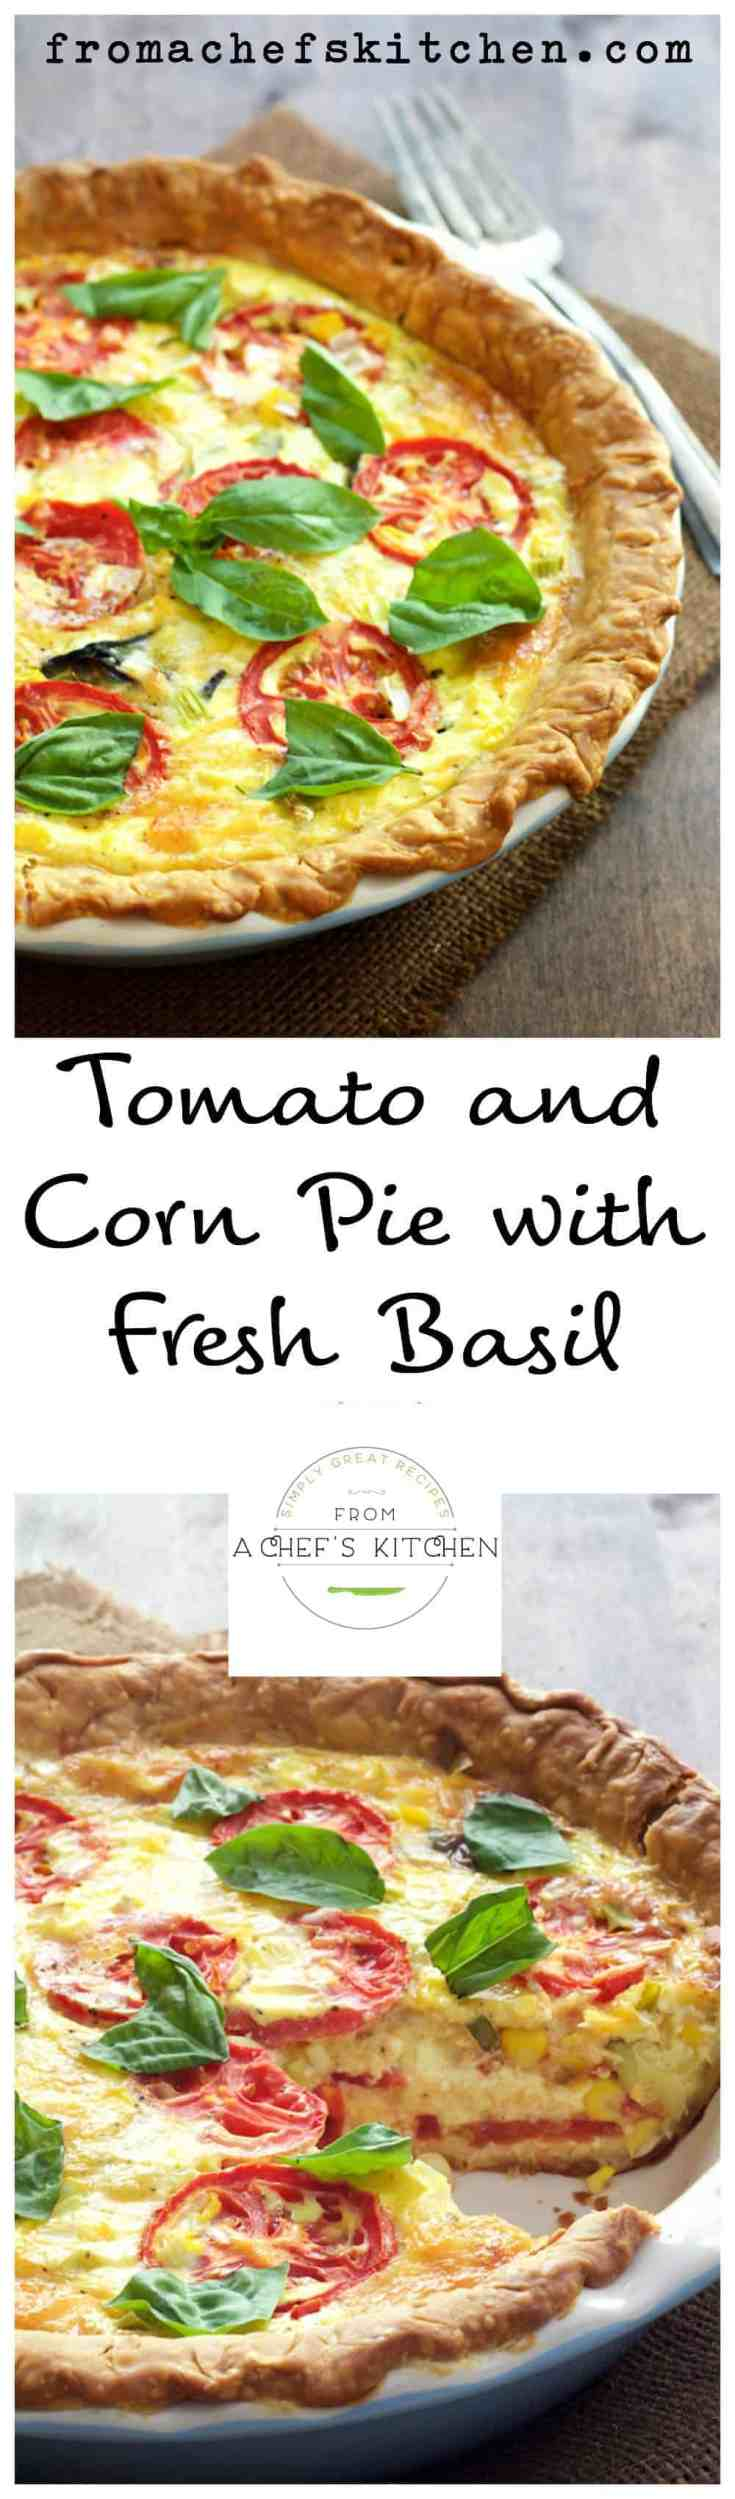 Tomato and Corn Pie with Fresh Basil is a twist on classic tomato pie.  It's the ultimate Southern-inspired summertime quiche! #tomato #tomatopie #corn #basil #southernfood #quiche